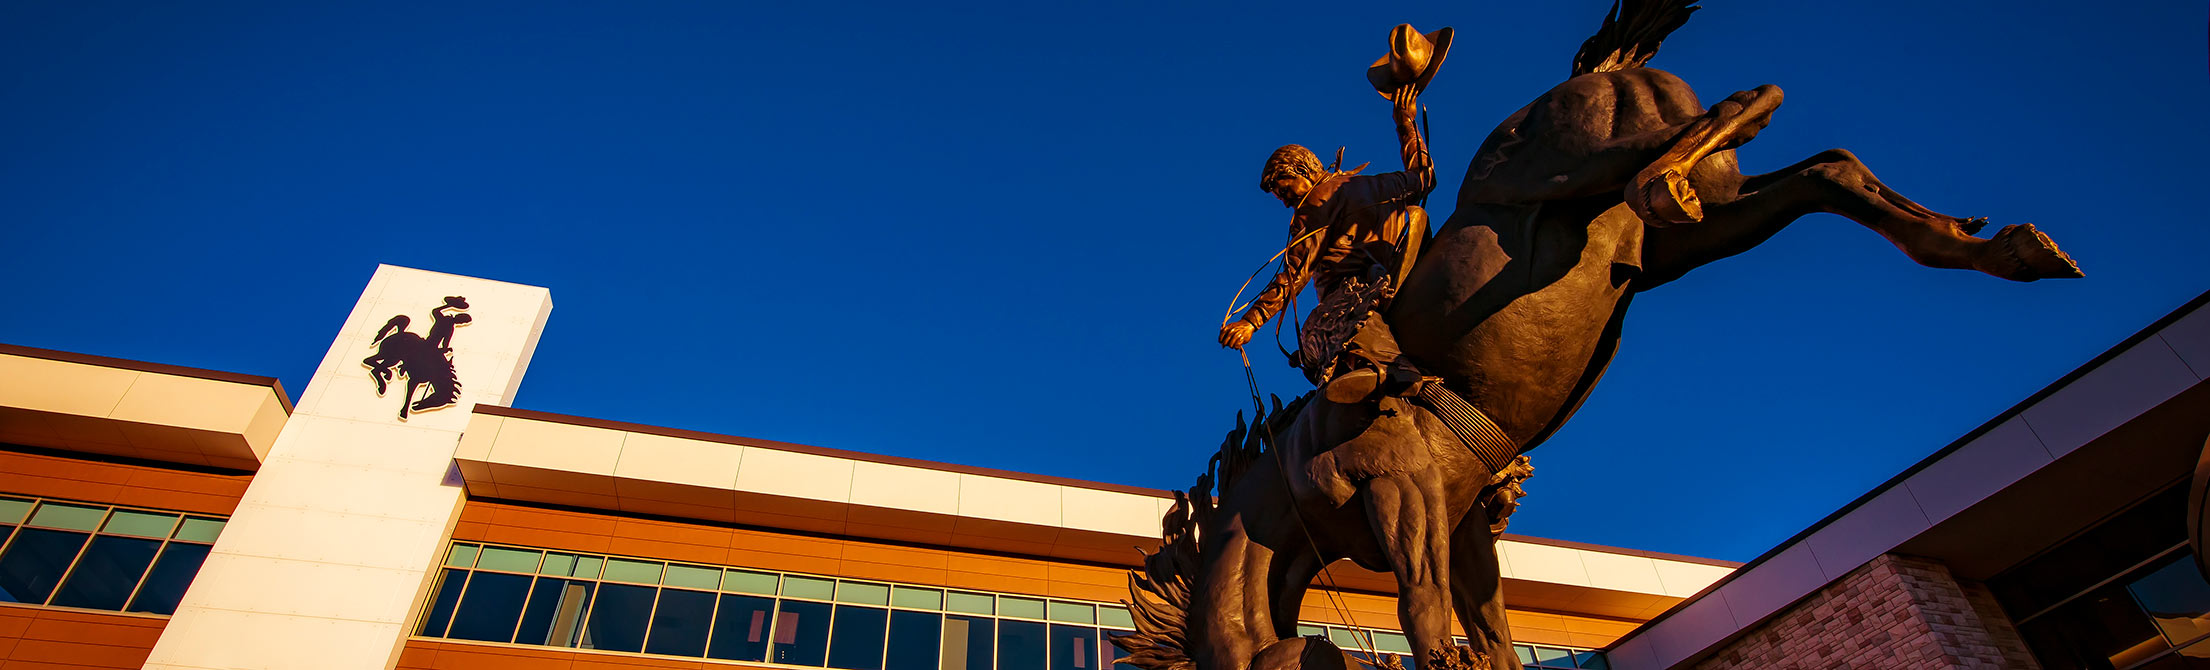 Image of steamboat statue at gateway center